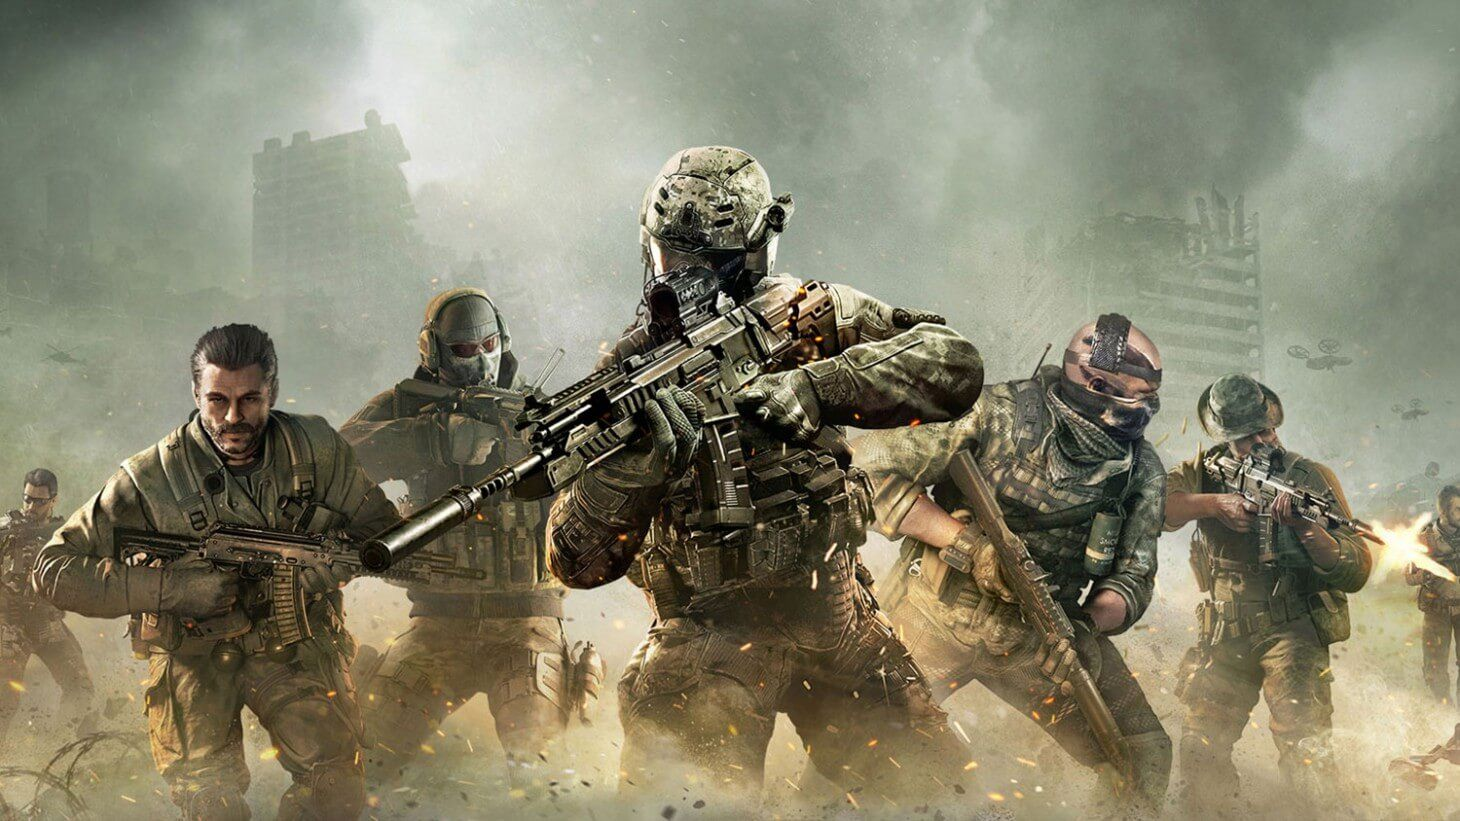 Call of Duty cover photo